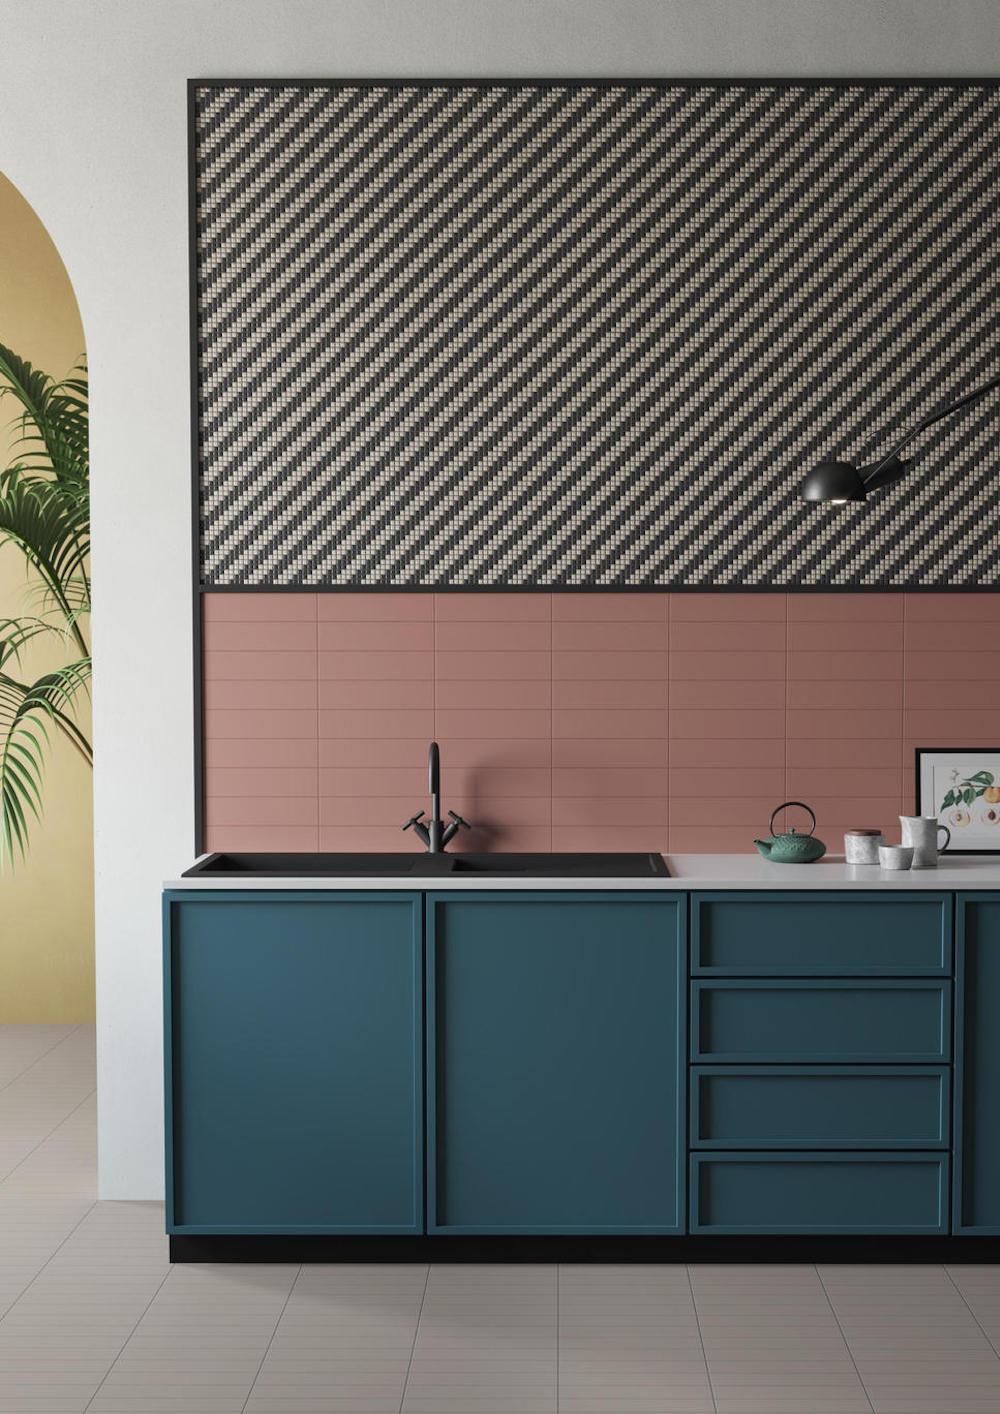 A modern kitchen with pastel surfaces